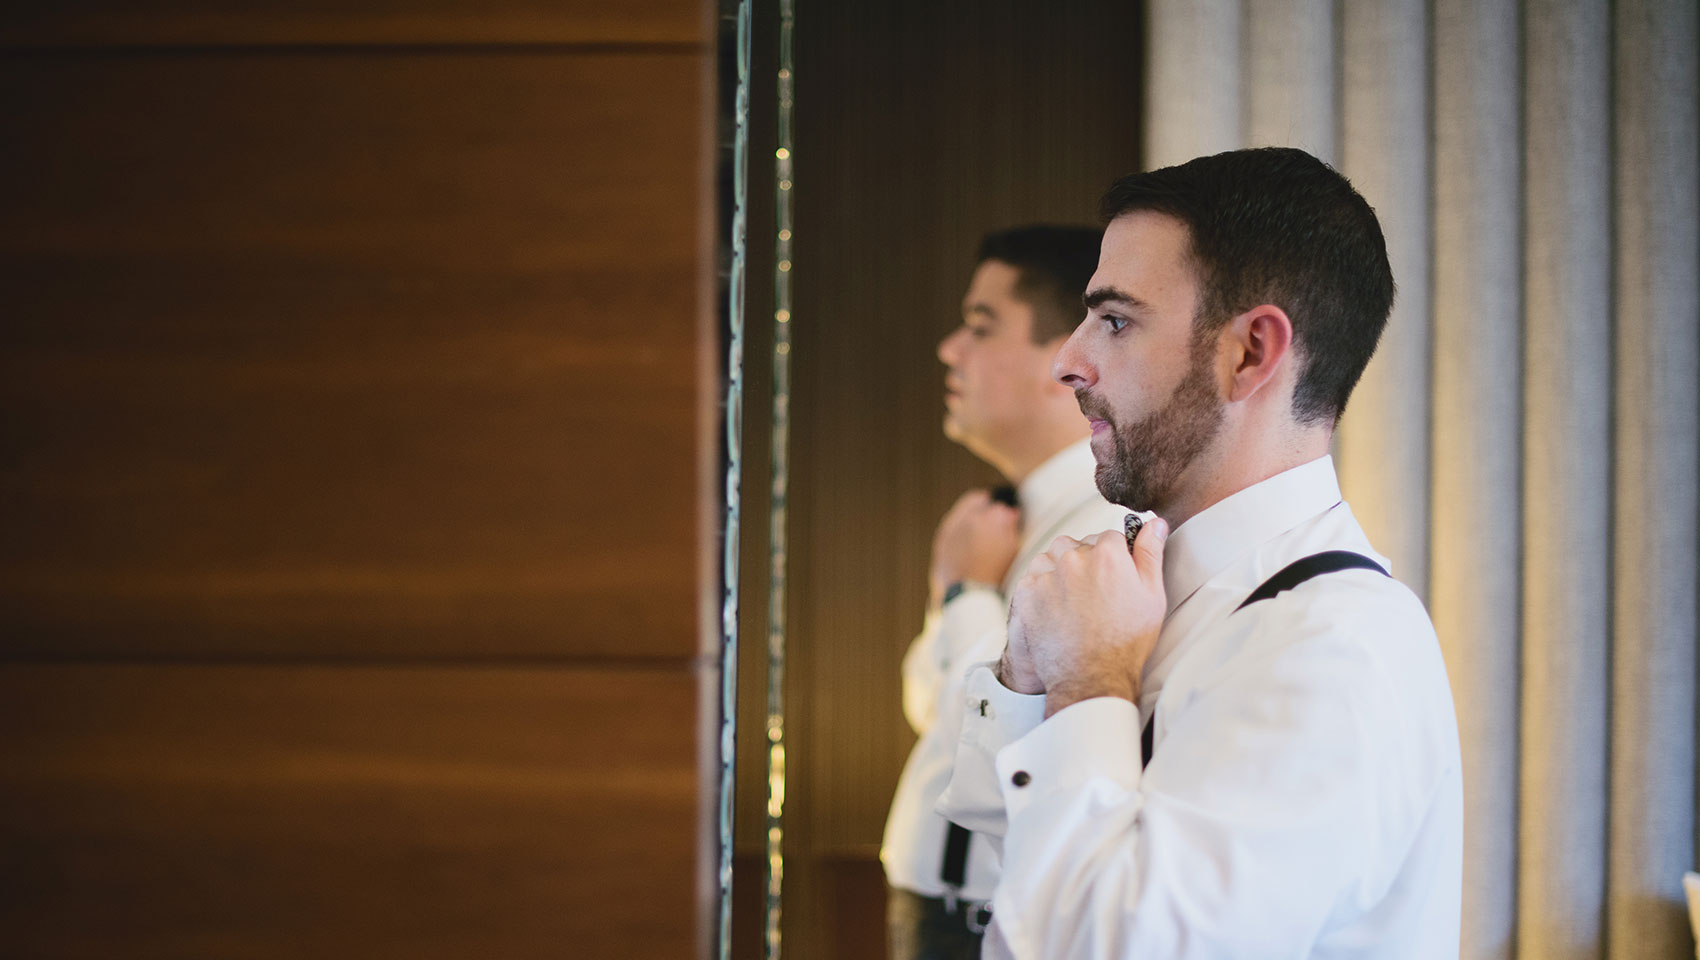 Groom adjusting his bowtie in the mirror on his wedding day